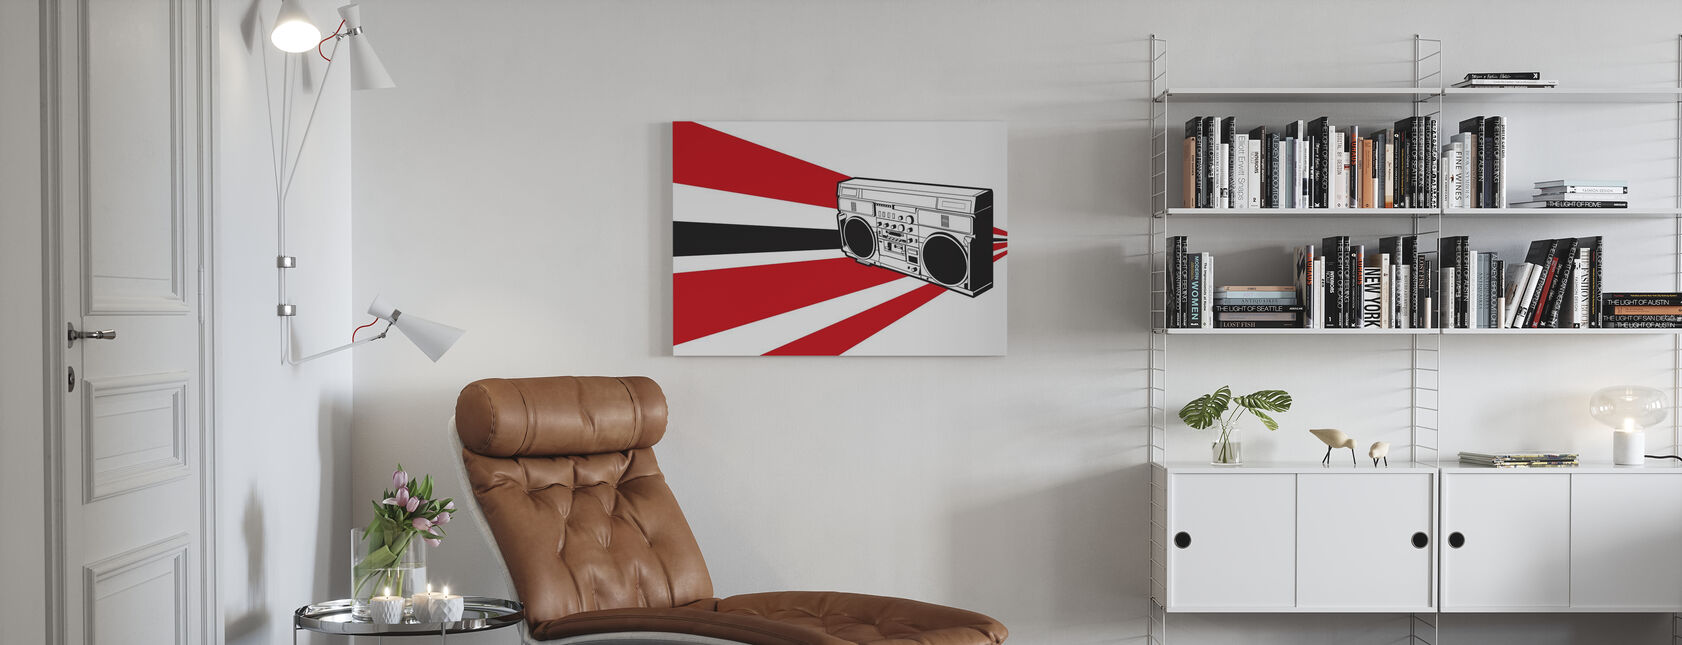 Stereo - Canvas print - Living Room